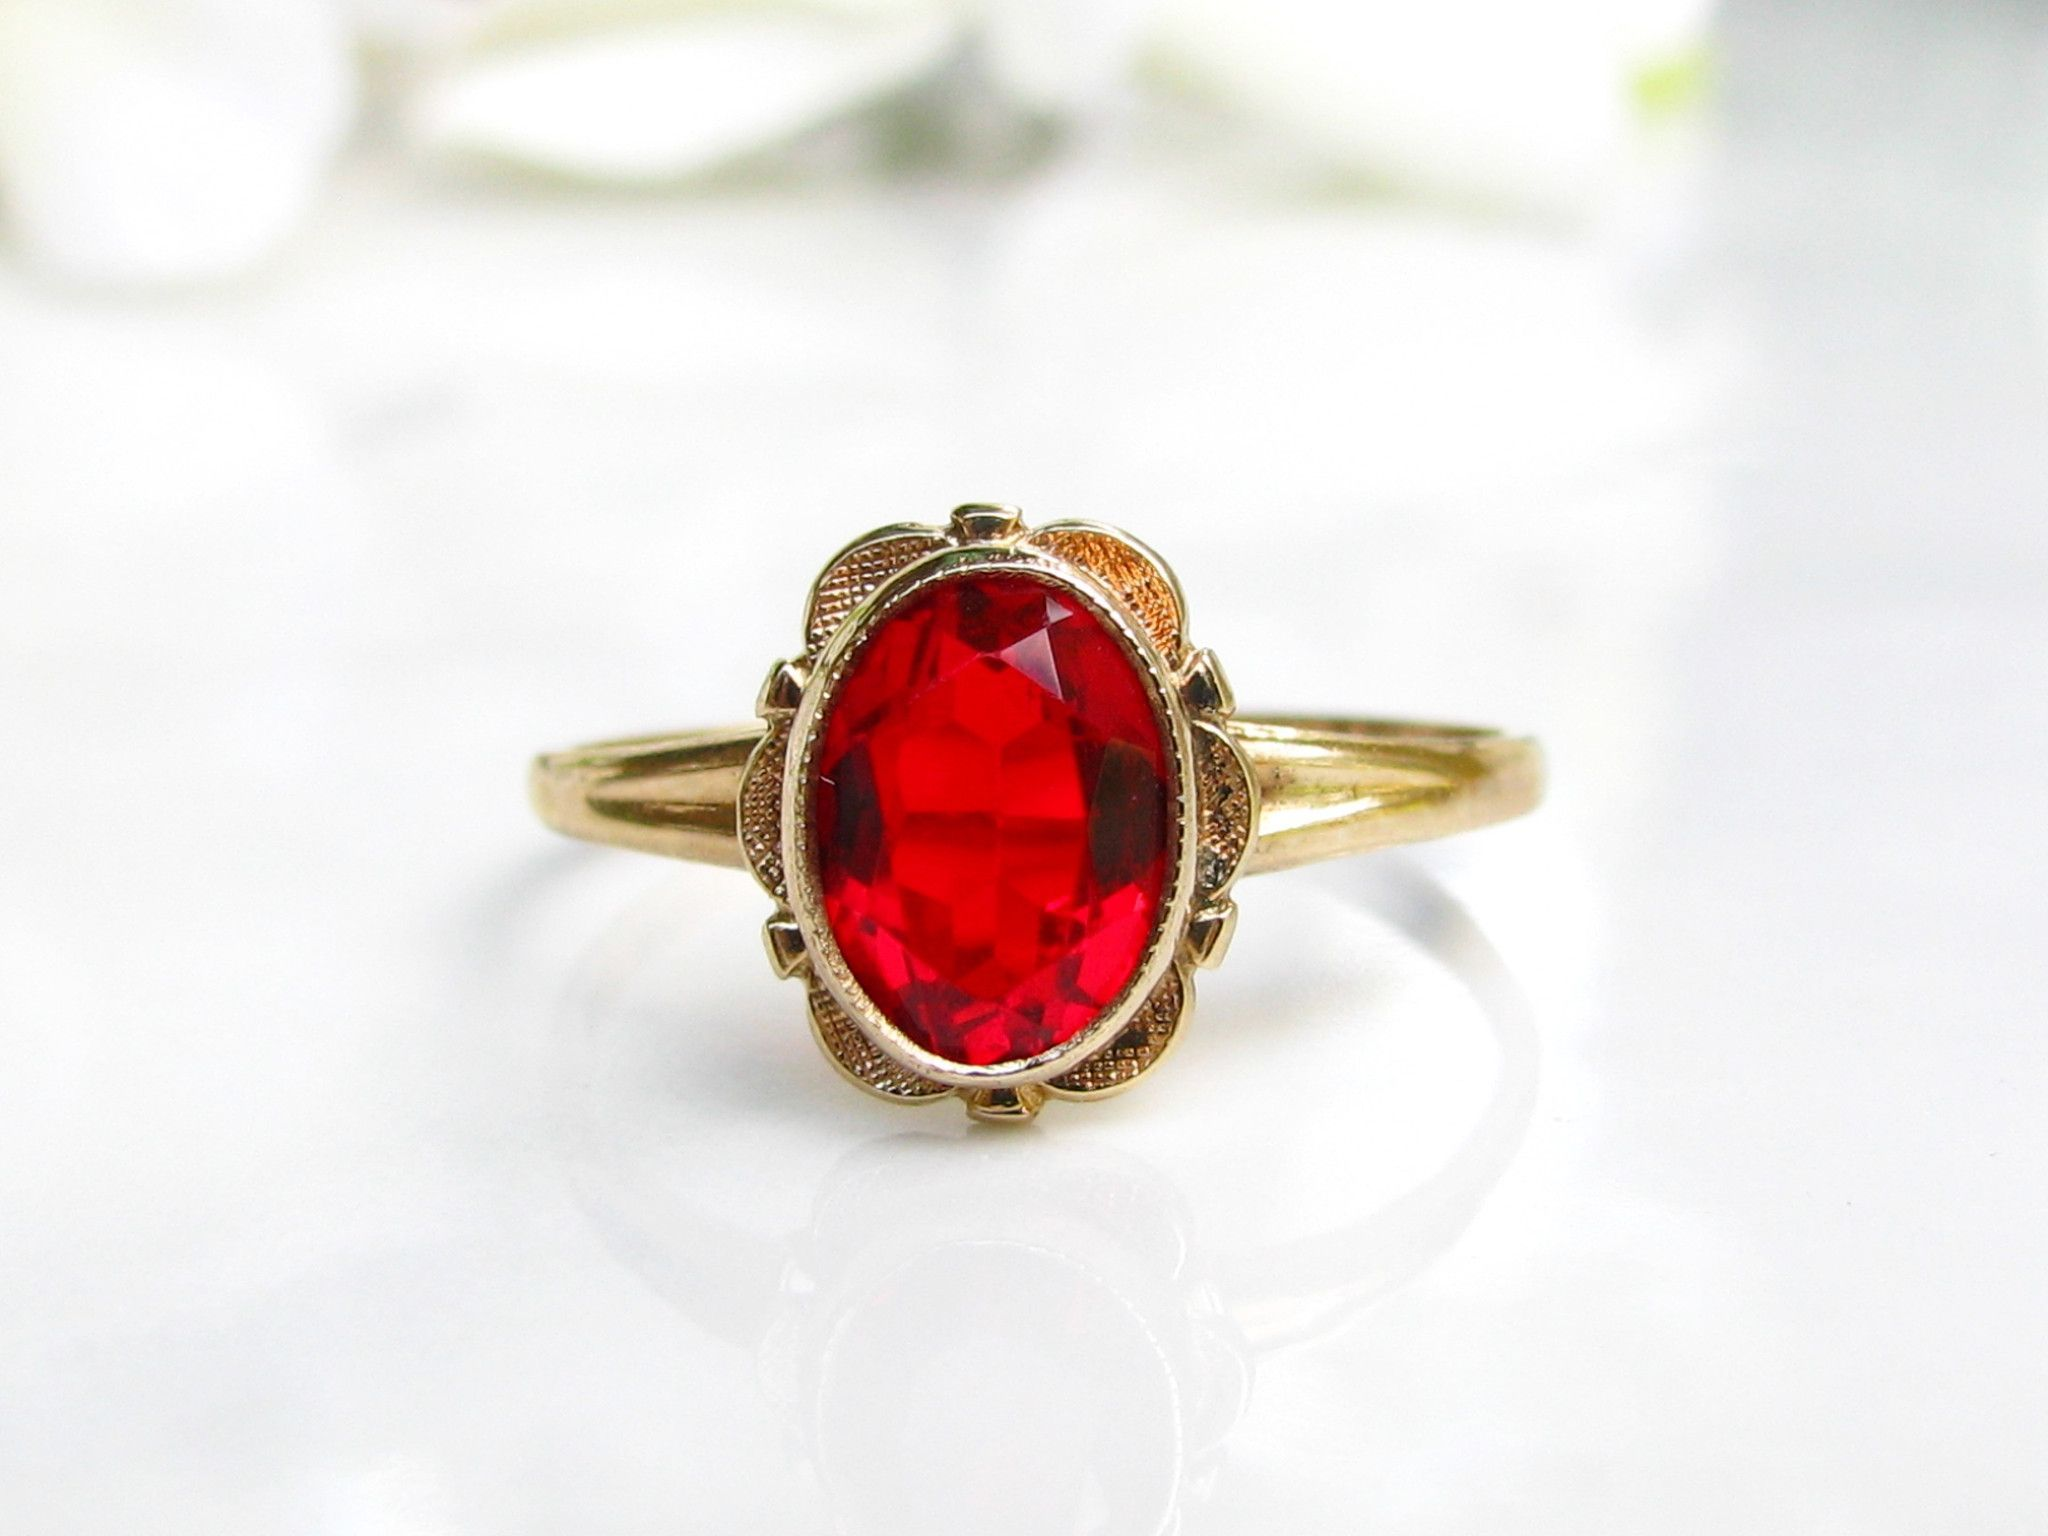 Vintage Red Glass Simulated Ruby Ring 10k Yellow Gold Scalloped Filigree Ring Psco Faux Ruby July Birthsto July Birthstone Ring Ruby Ring Vintage Sapphire Ring